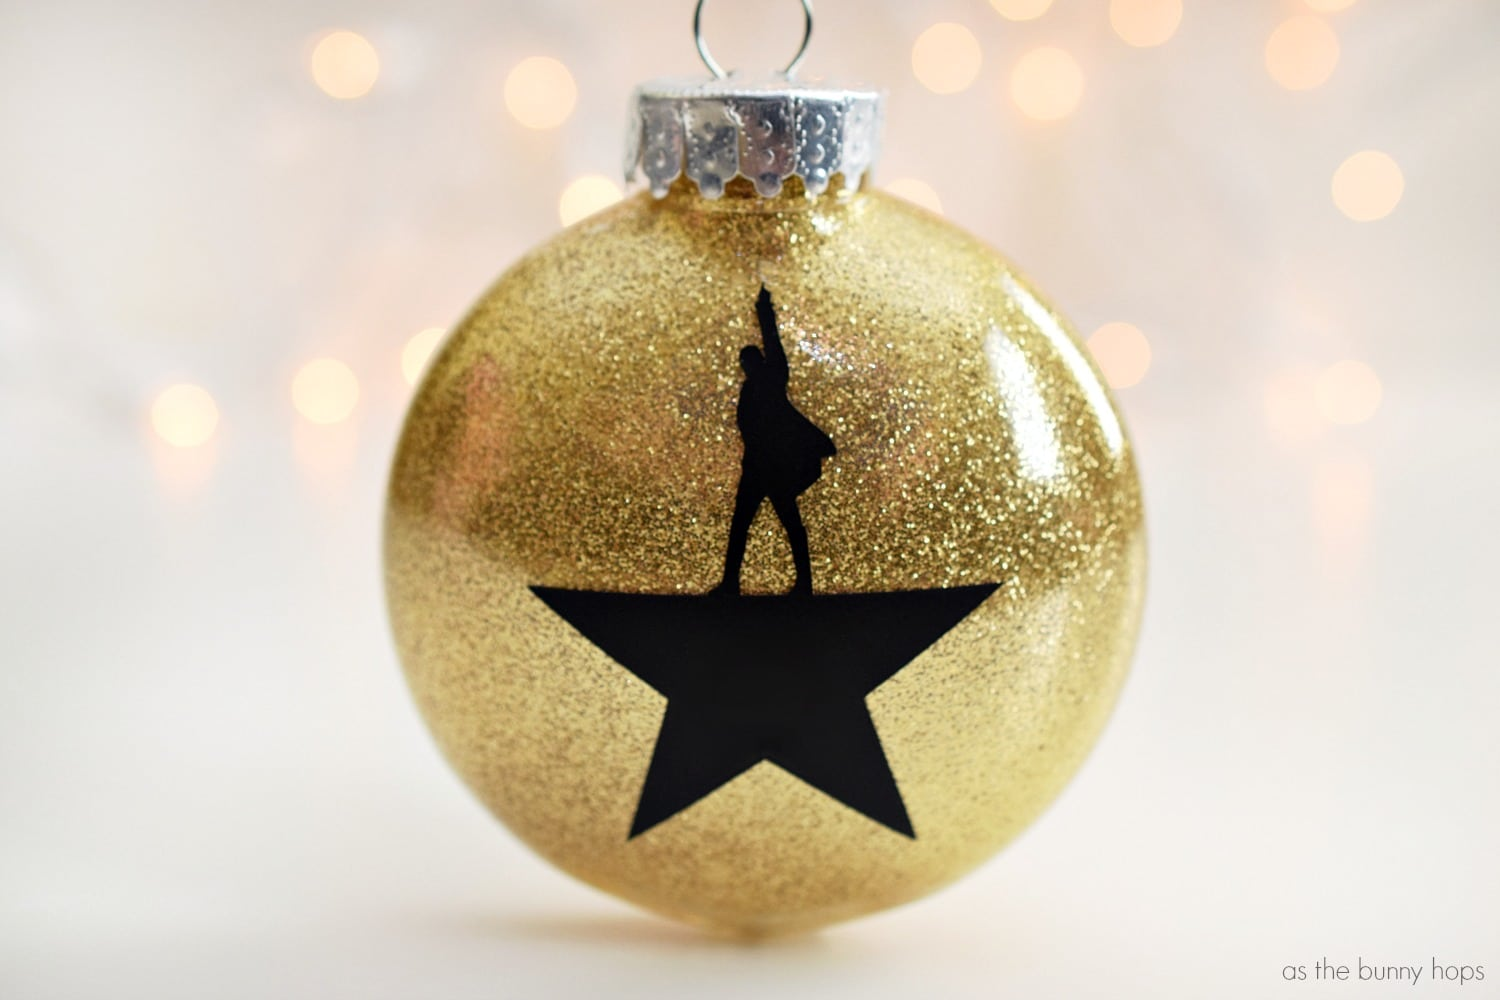 Hamilton Christmas Ornament.Diy Hamilton Christmas Ornaments As The Bunny Hops